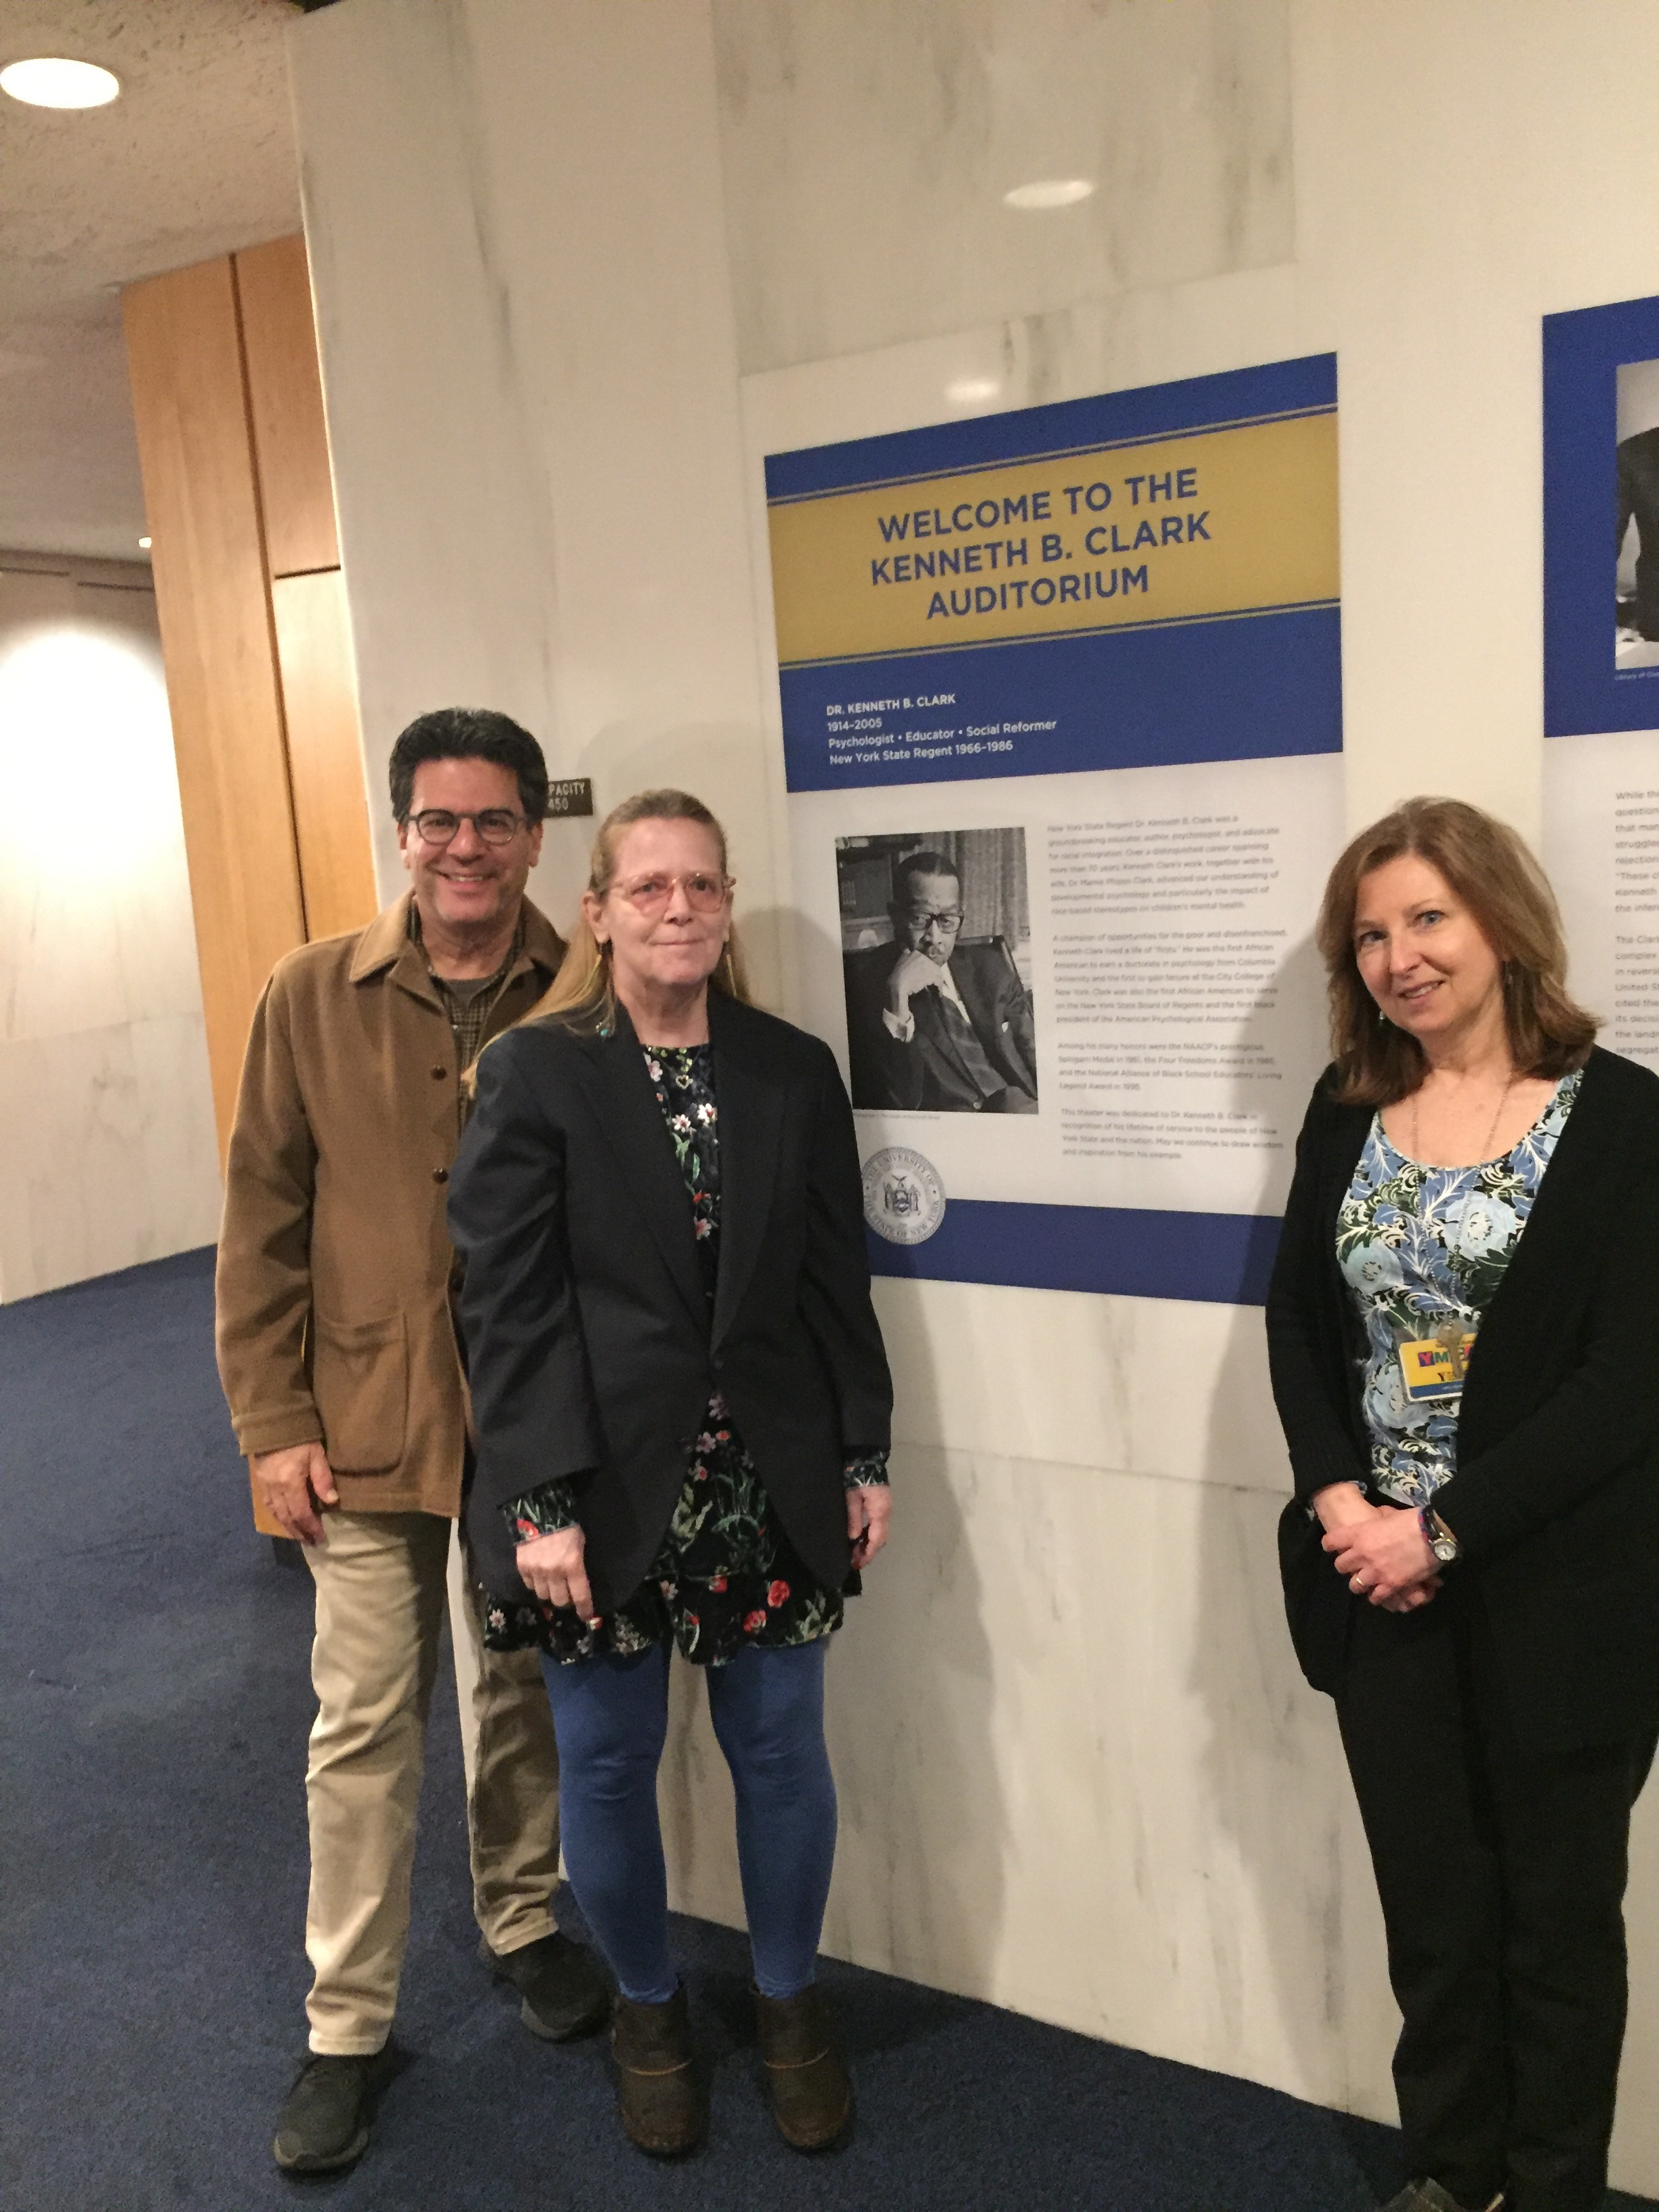 GME Fine Arts Curator David Deitch, with Carla Borea (daughter of and heir to the Estate of photographer Raimondo Borea) and Nancy Kelley, New York State Museum Director of Museum Support Services in front of wall text including Raimondo Borea's photograph of Kenneth B. Clark.